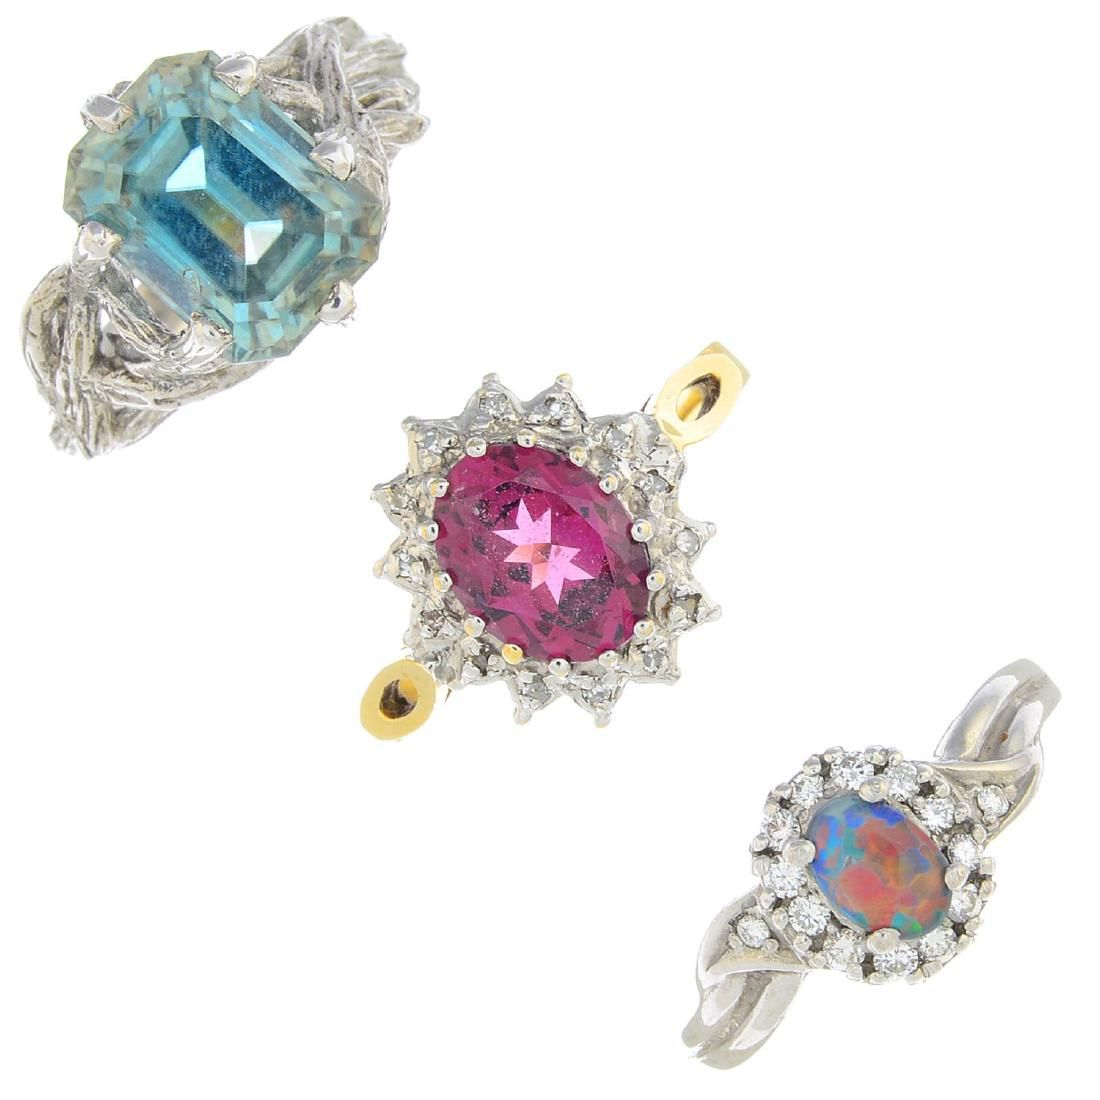 A selection of three gem-set rings. To include a 9ct